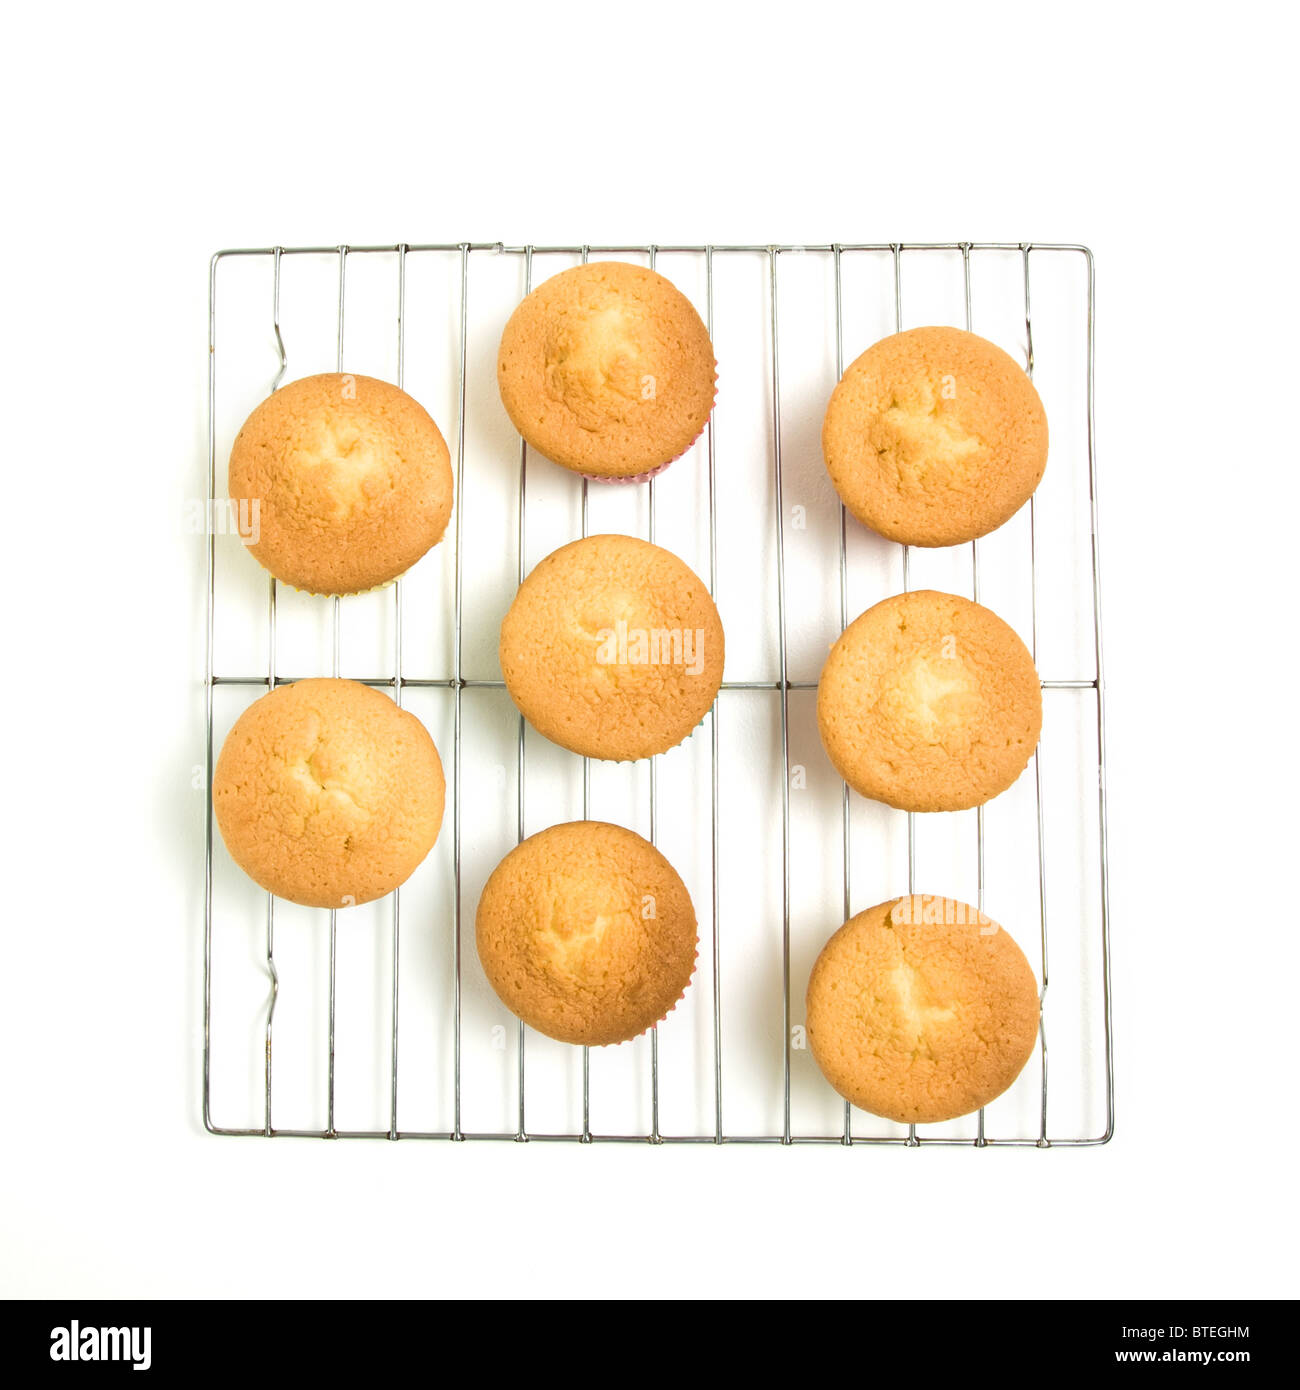 Home baked cupcakes cooling on wire mesh rack from low perspective isolated on white. - Stock Image